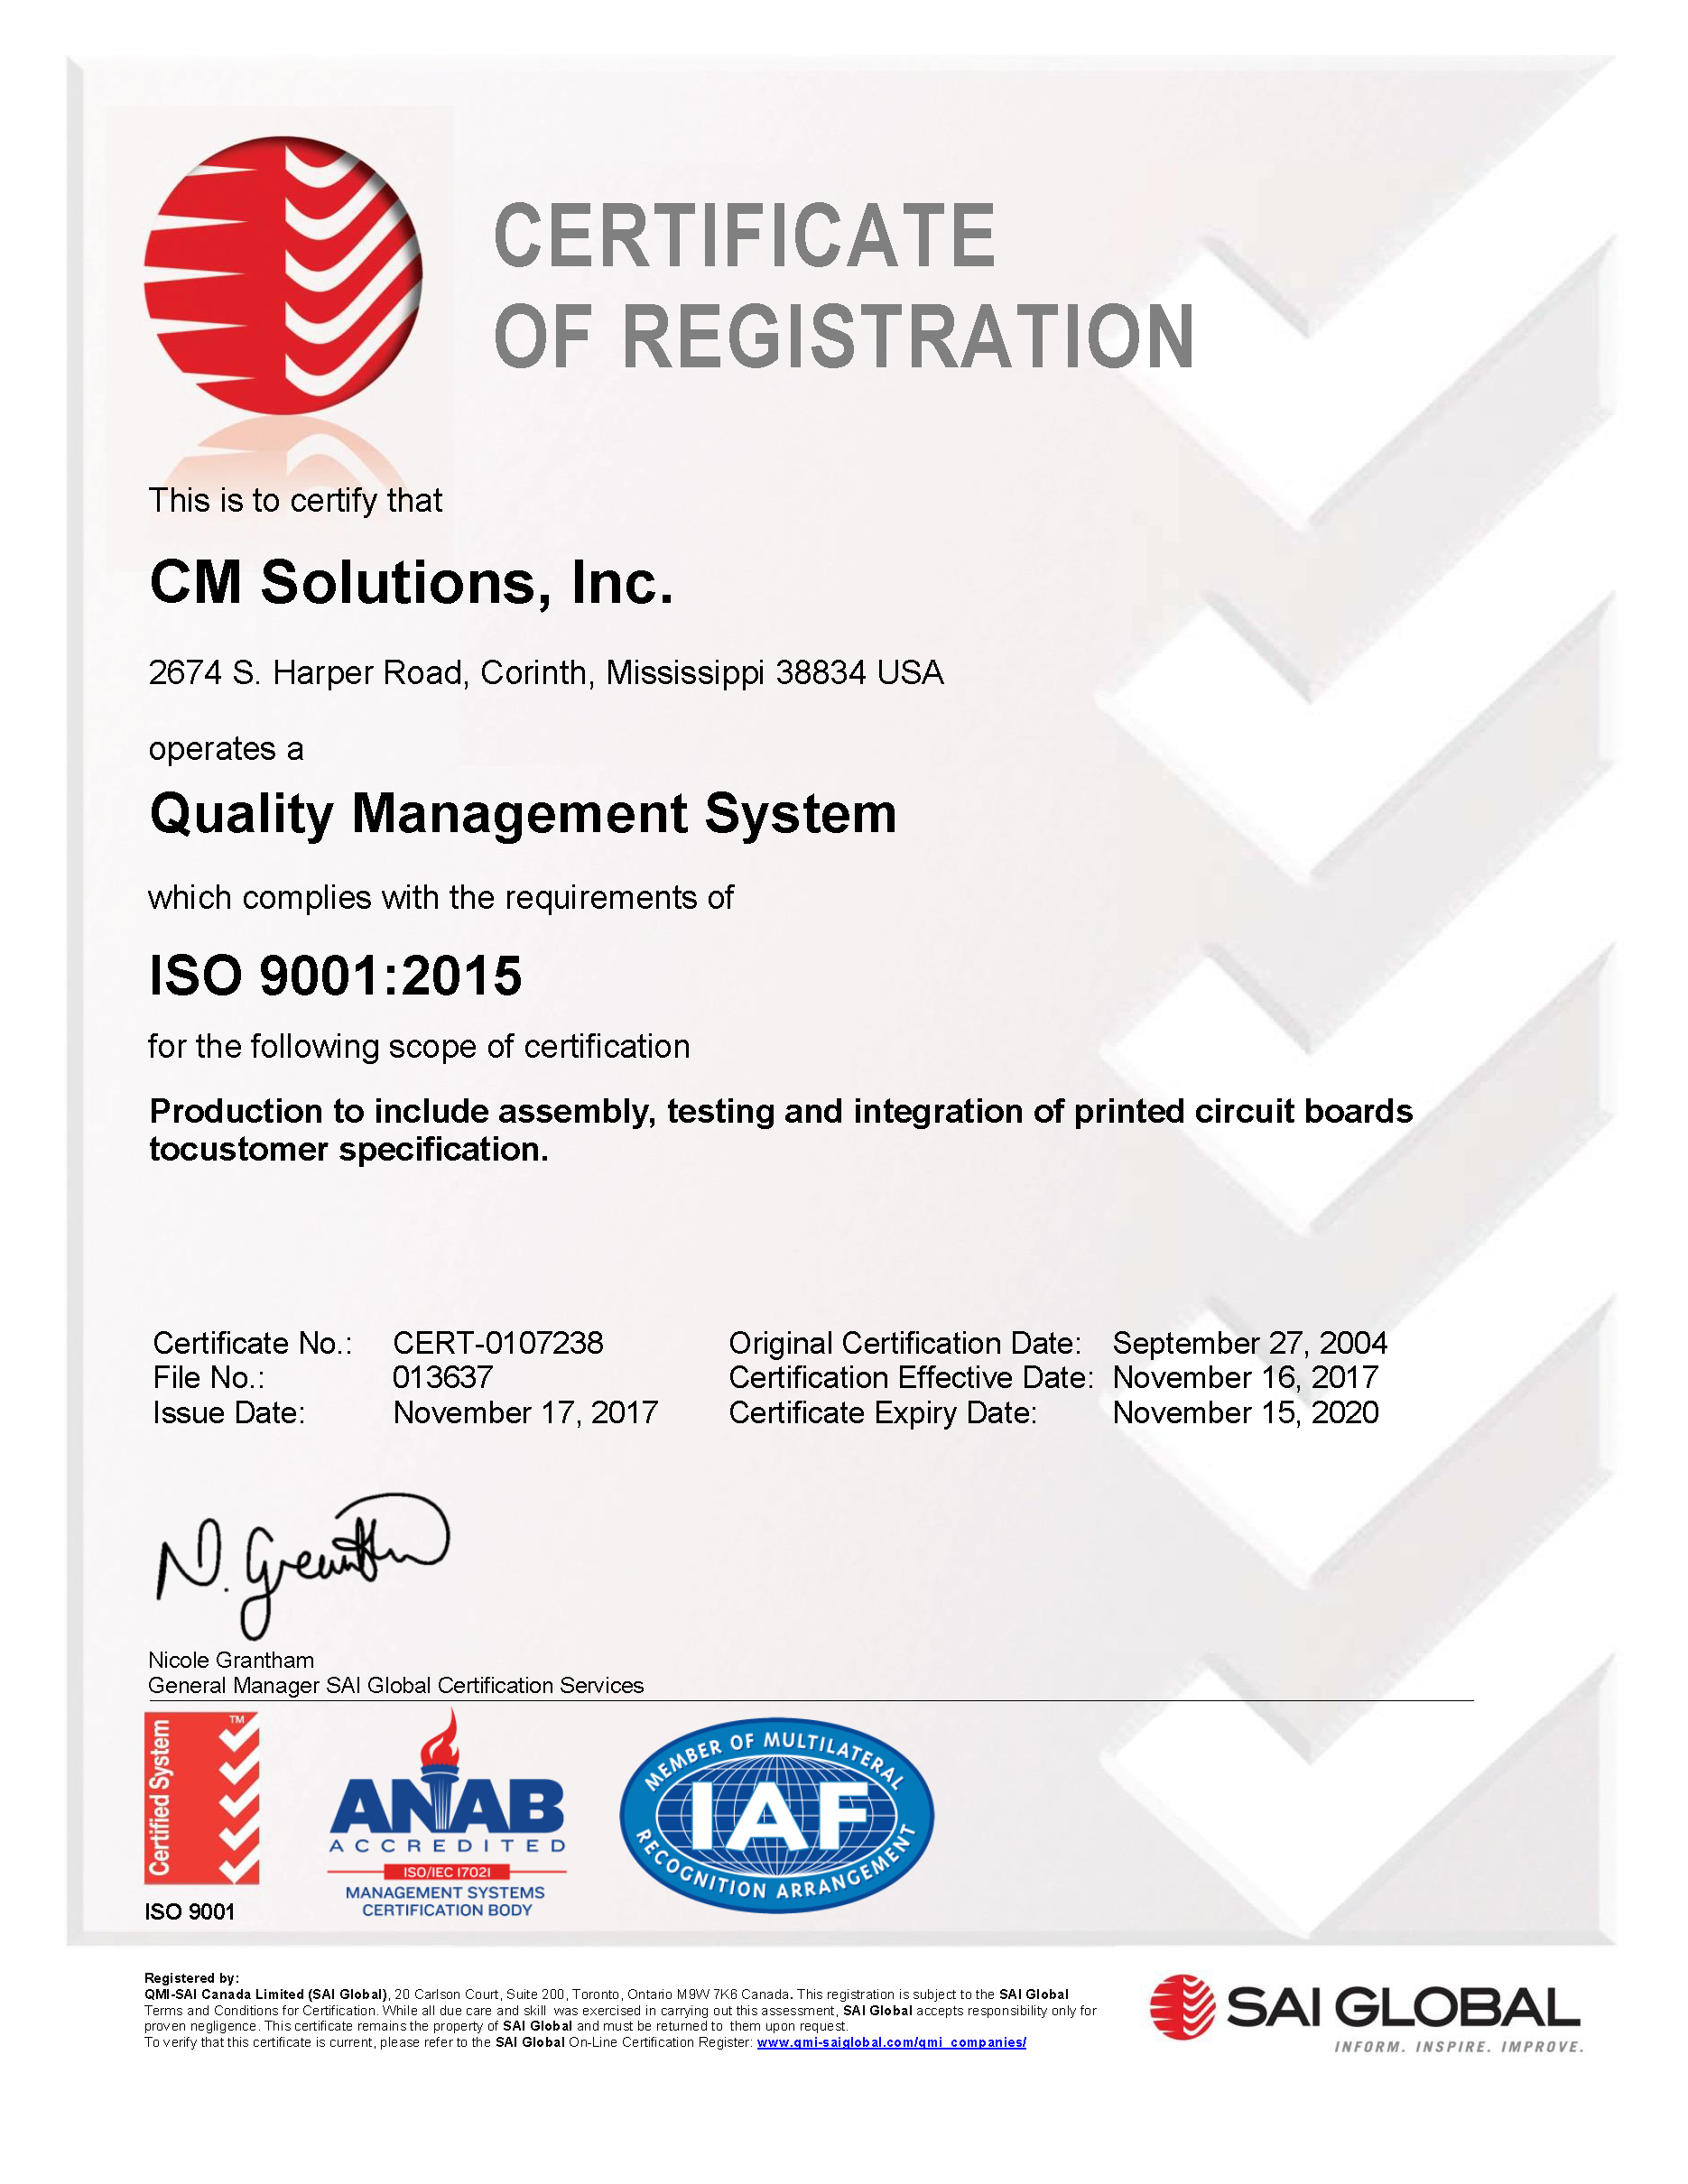 ISO 90012015 certificate of registration.png